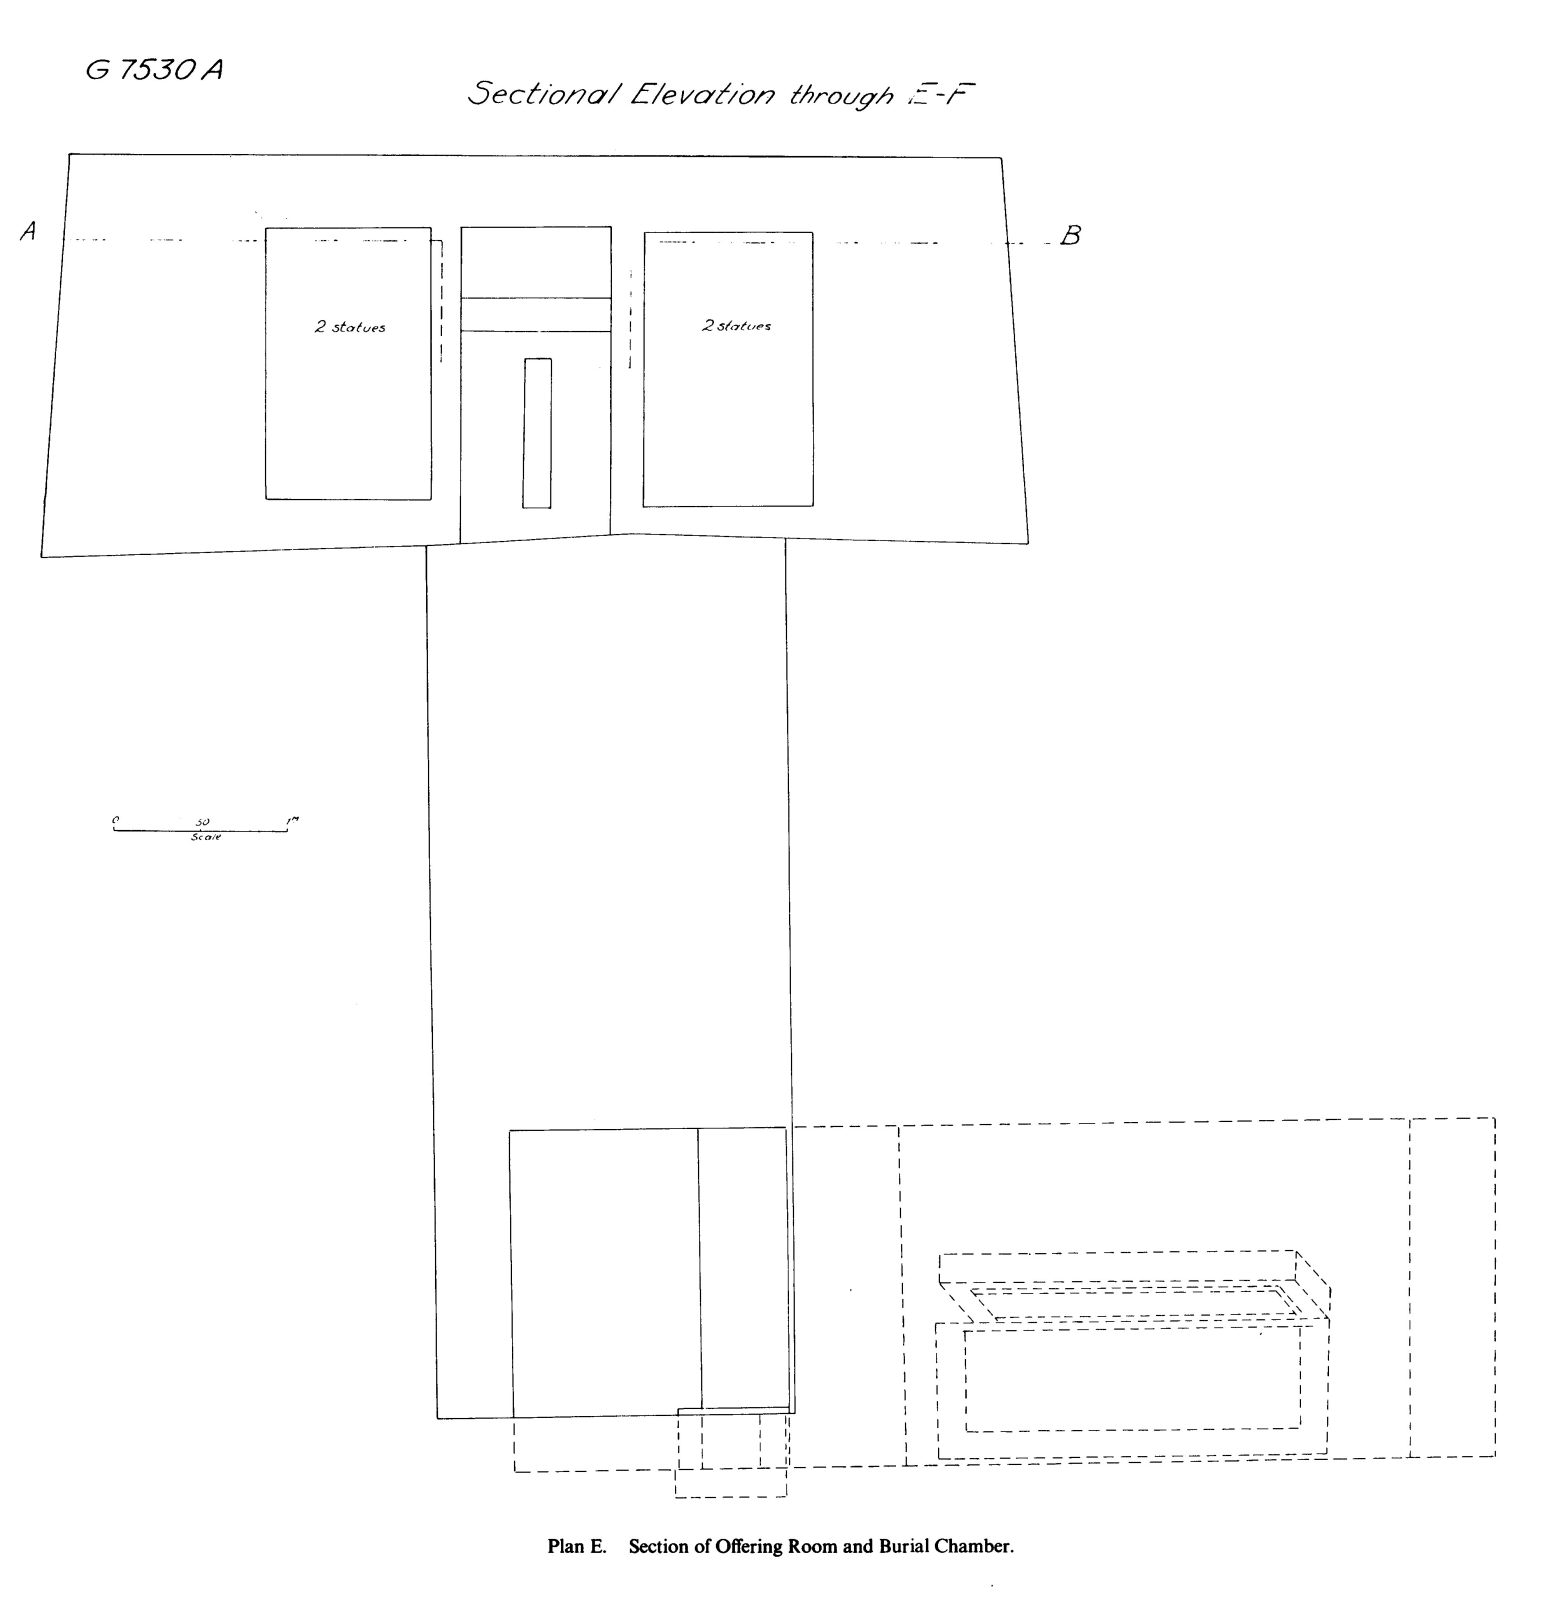 Maps and plans: G 7530-7540, Schematic section